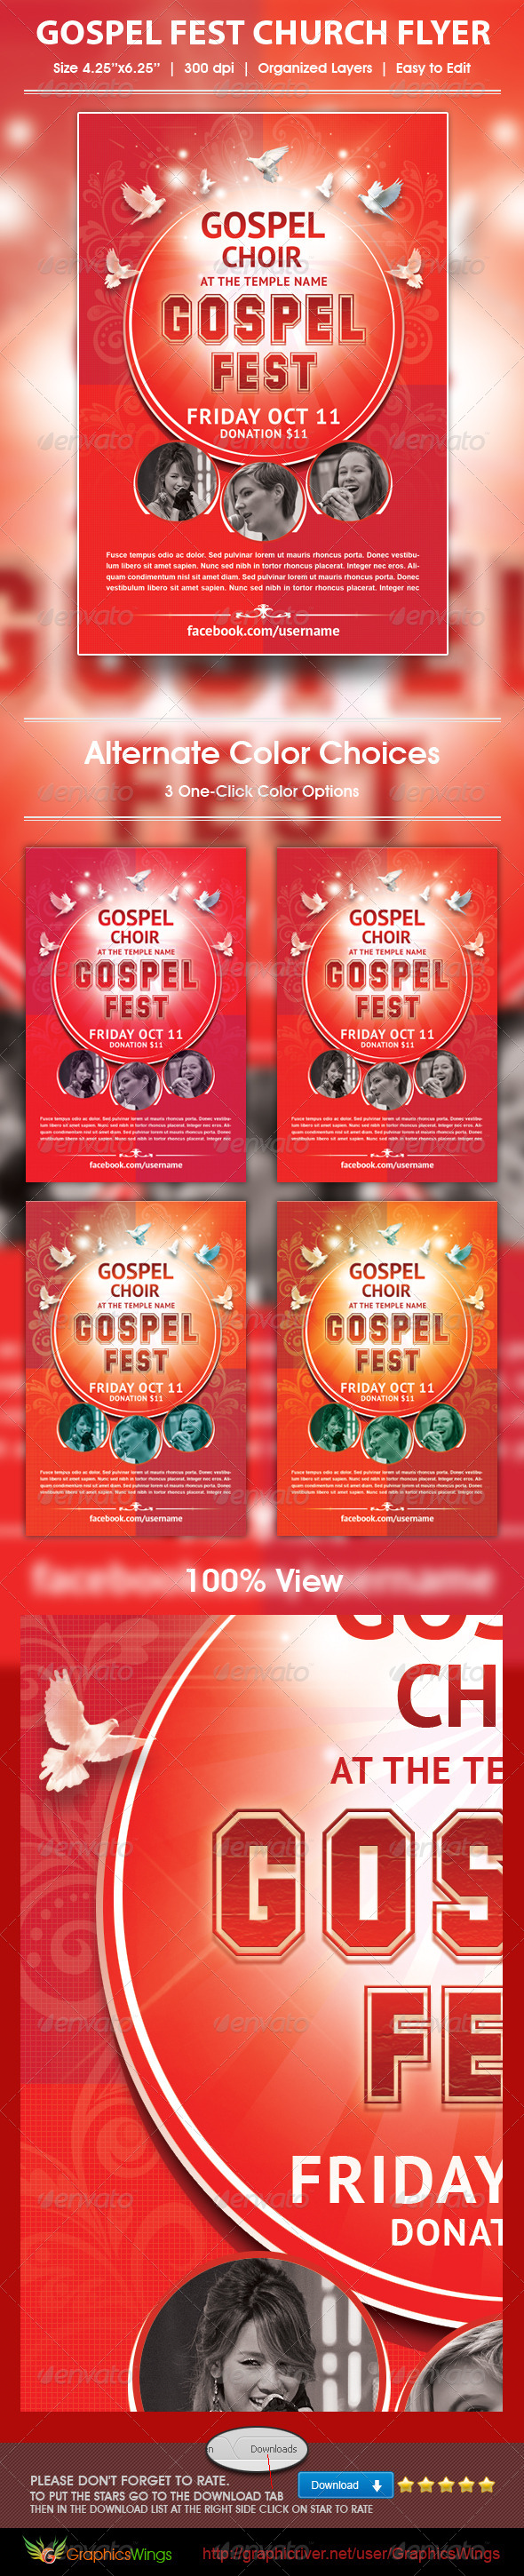 GraphicRiver Gospel Fest Church Flyer Template 5900090